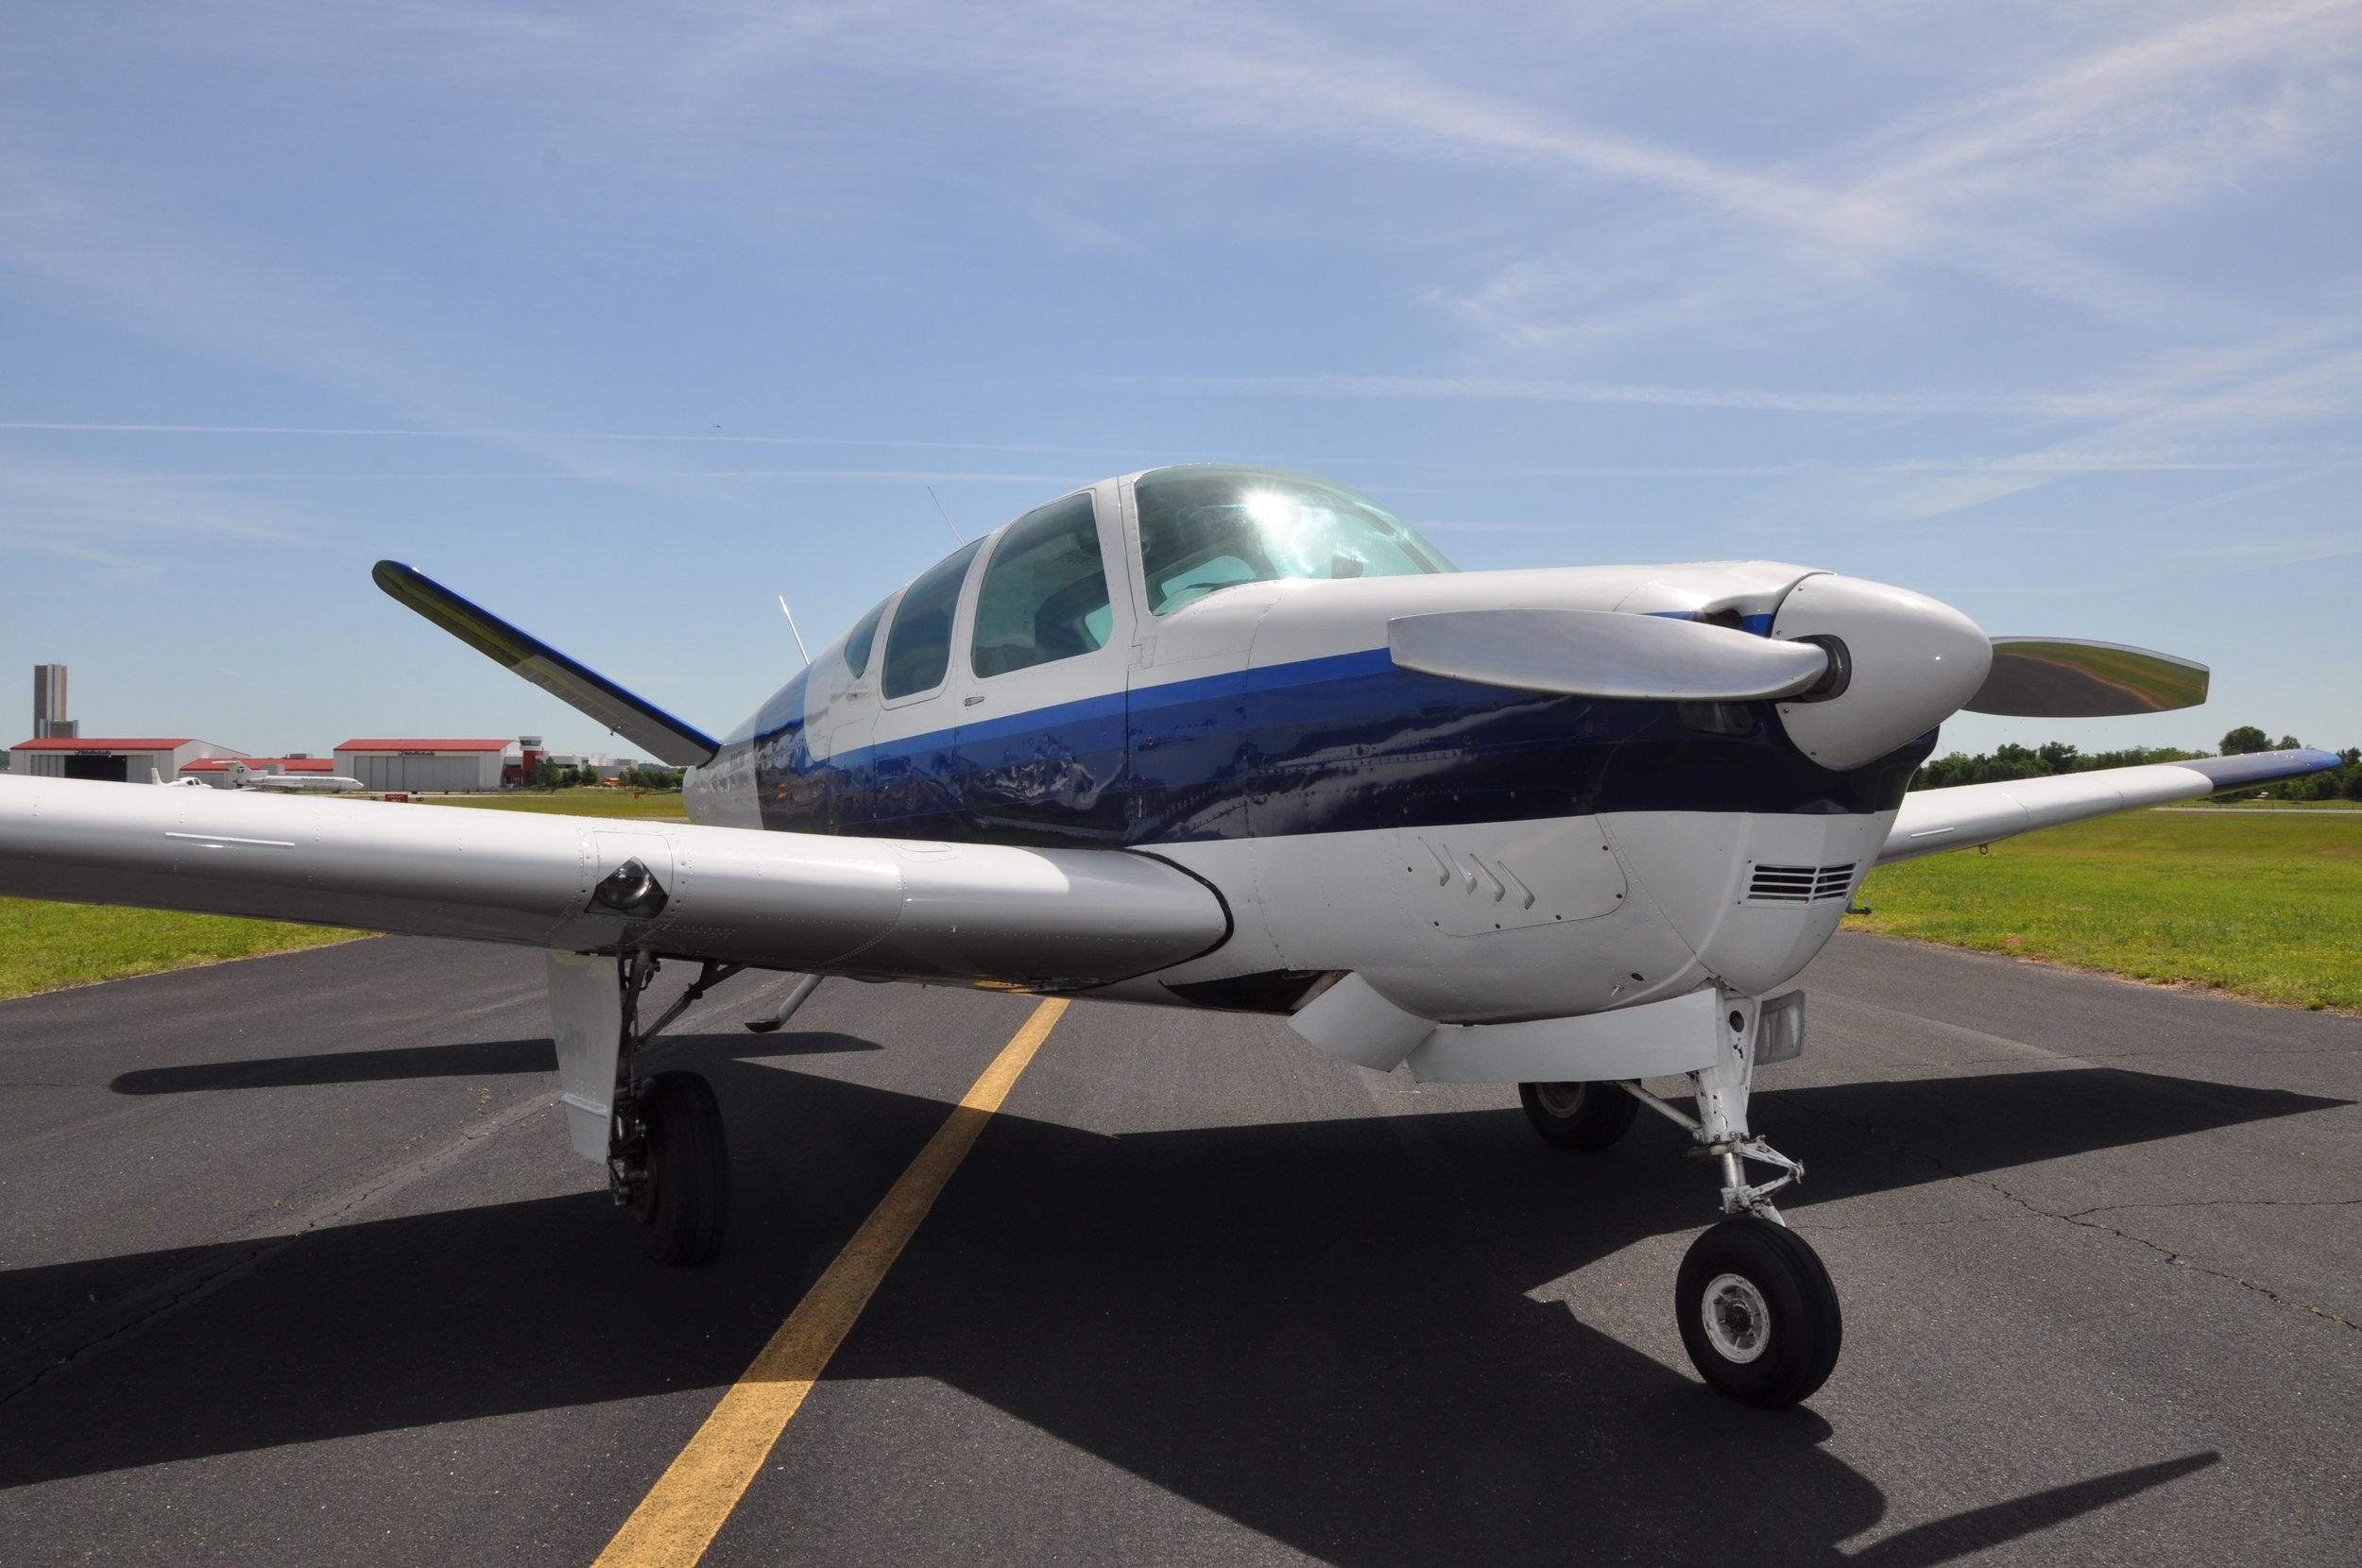 Maintenance - While Our Specialty Is Beechcraft, We Work On Most General Aviation Piston Planes. Our Mechanics Are Experienced ATP Pilots And Will Proudly Fly The Equipment They Repair.